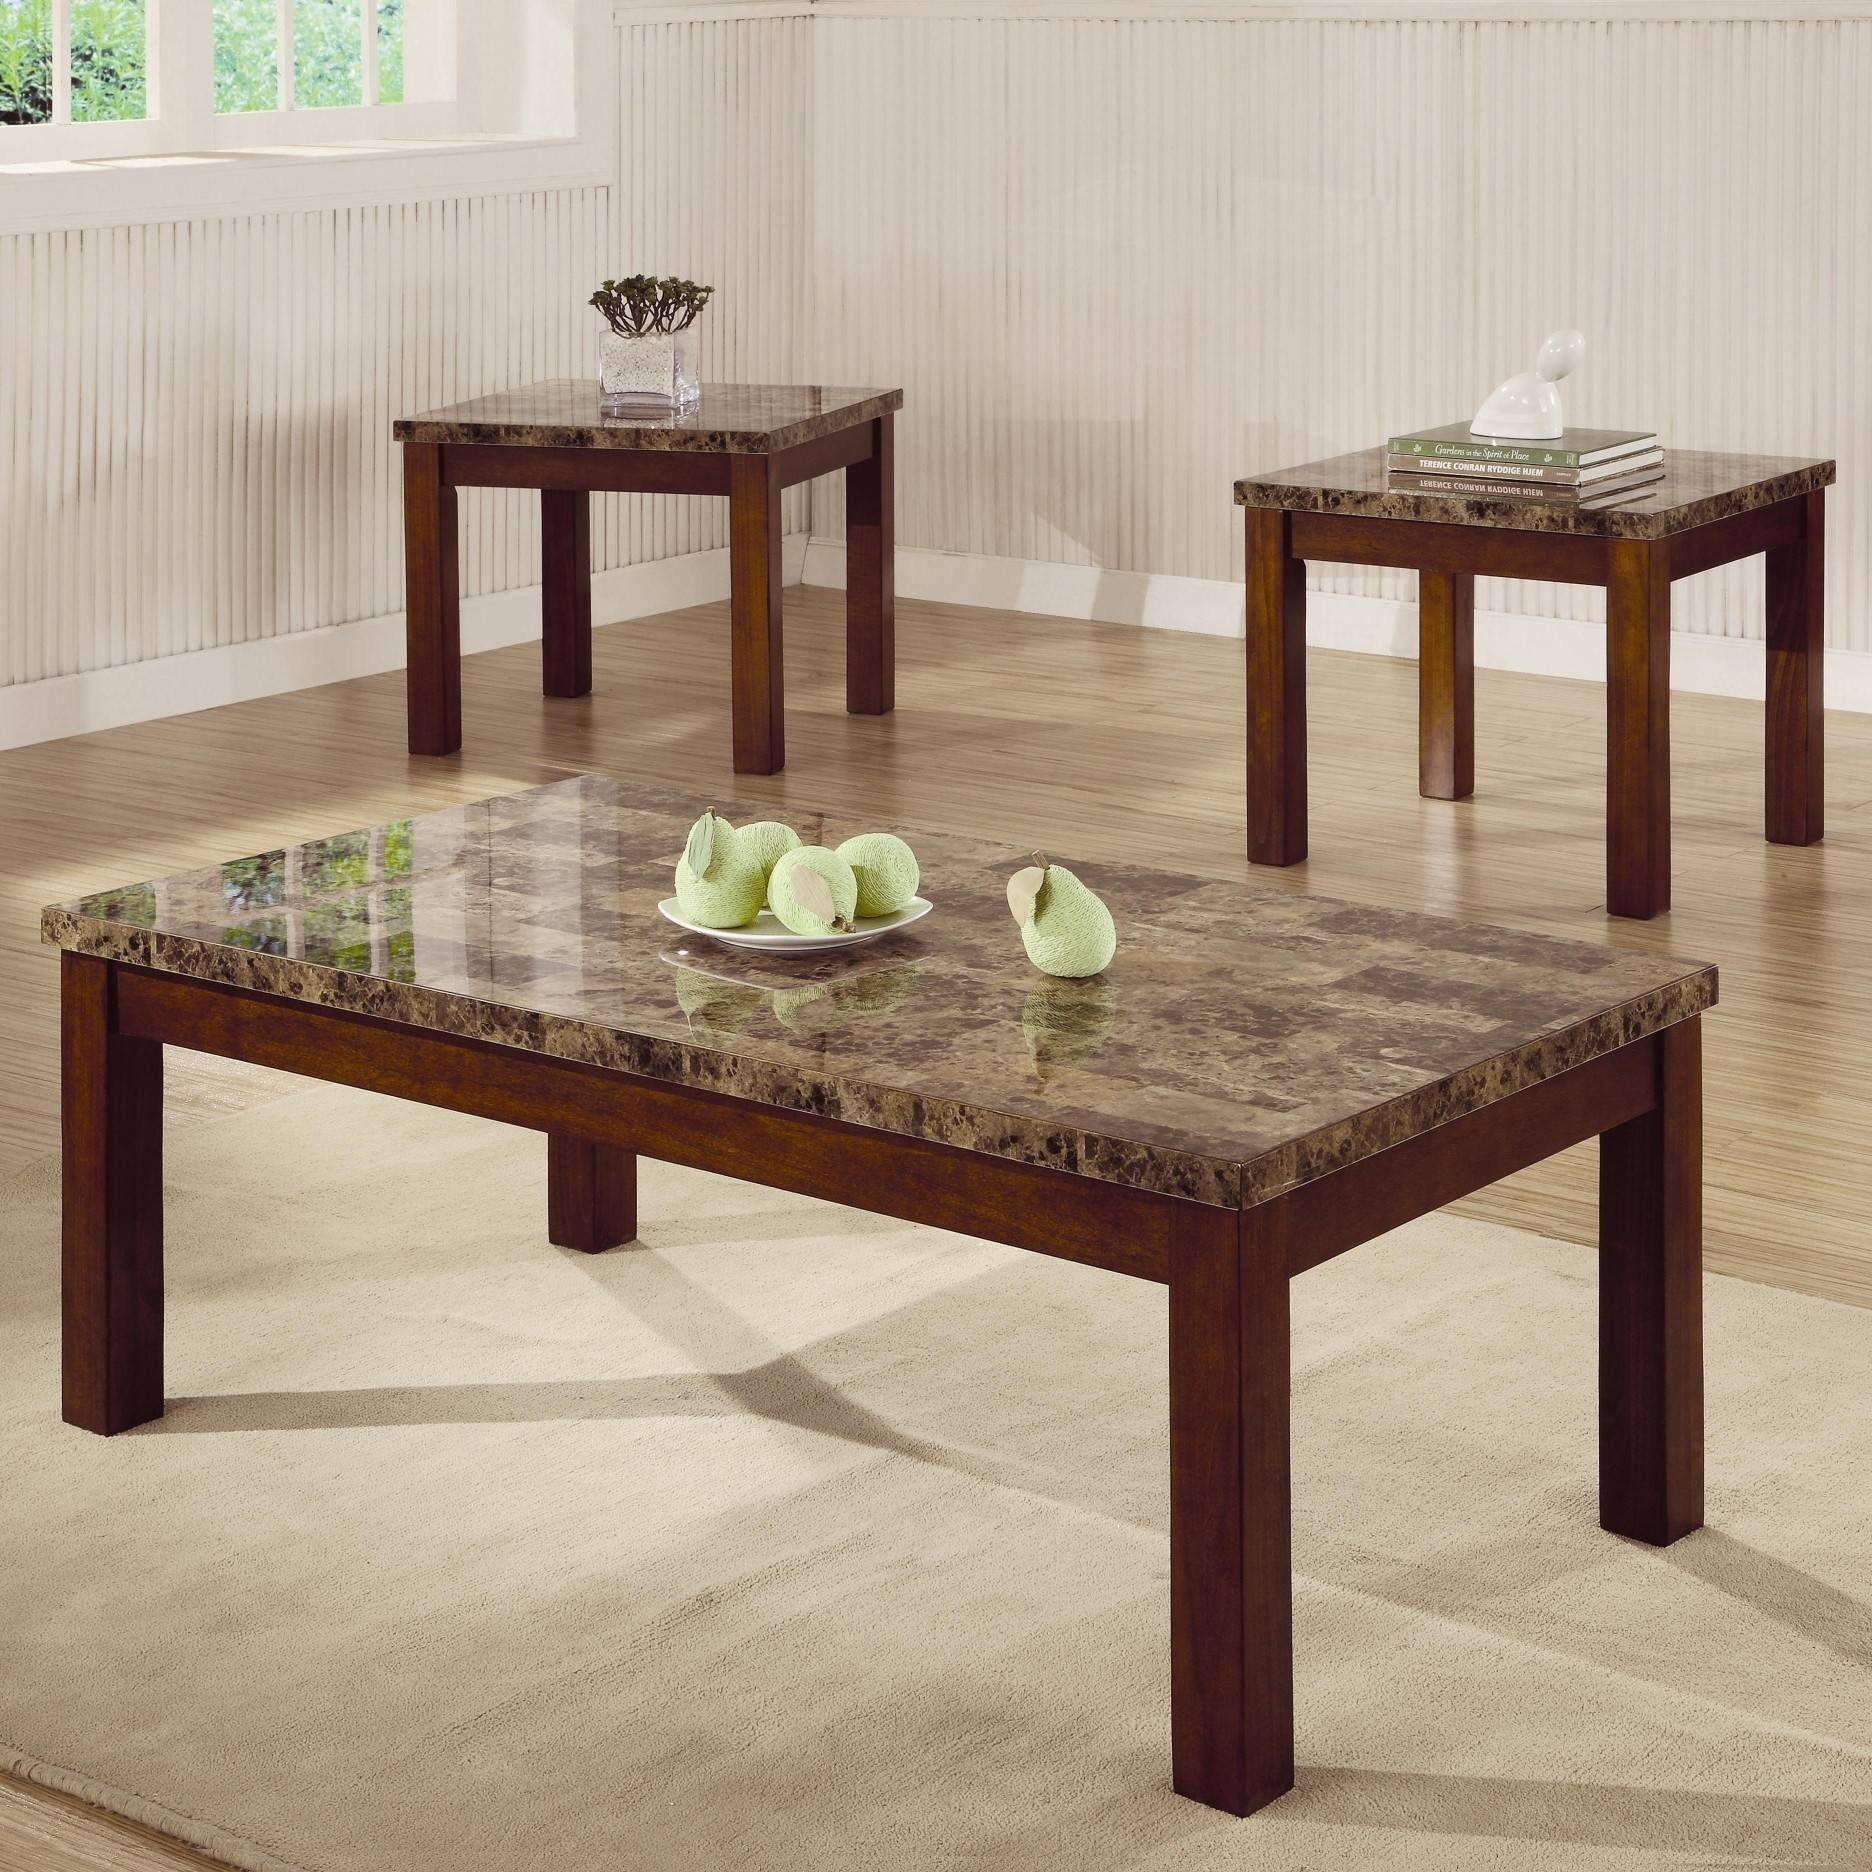 Arden 3 Piece Marble Look Top Coffee/end Table Set - Coffee Table pertaining to Coffee Table With Matching End Tables (Image 1 of 30)